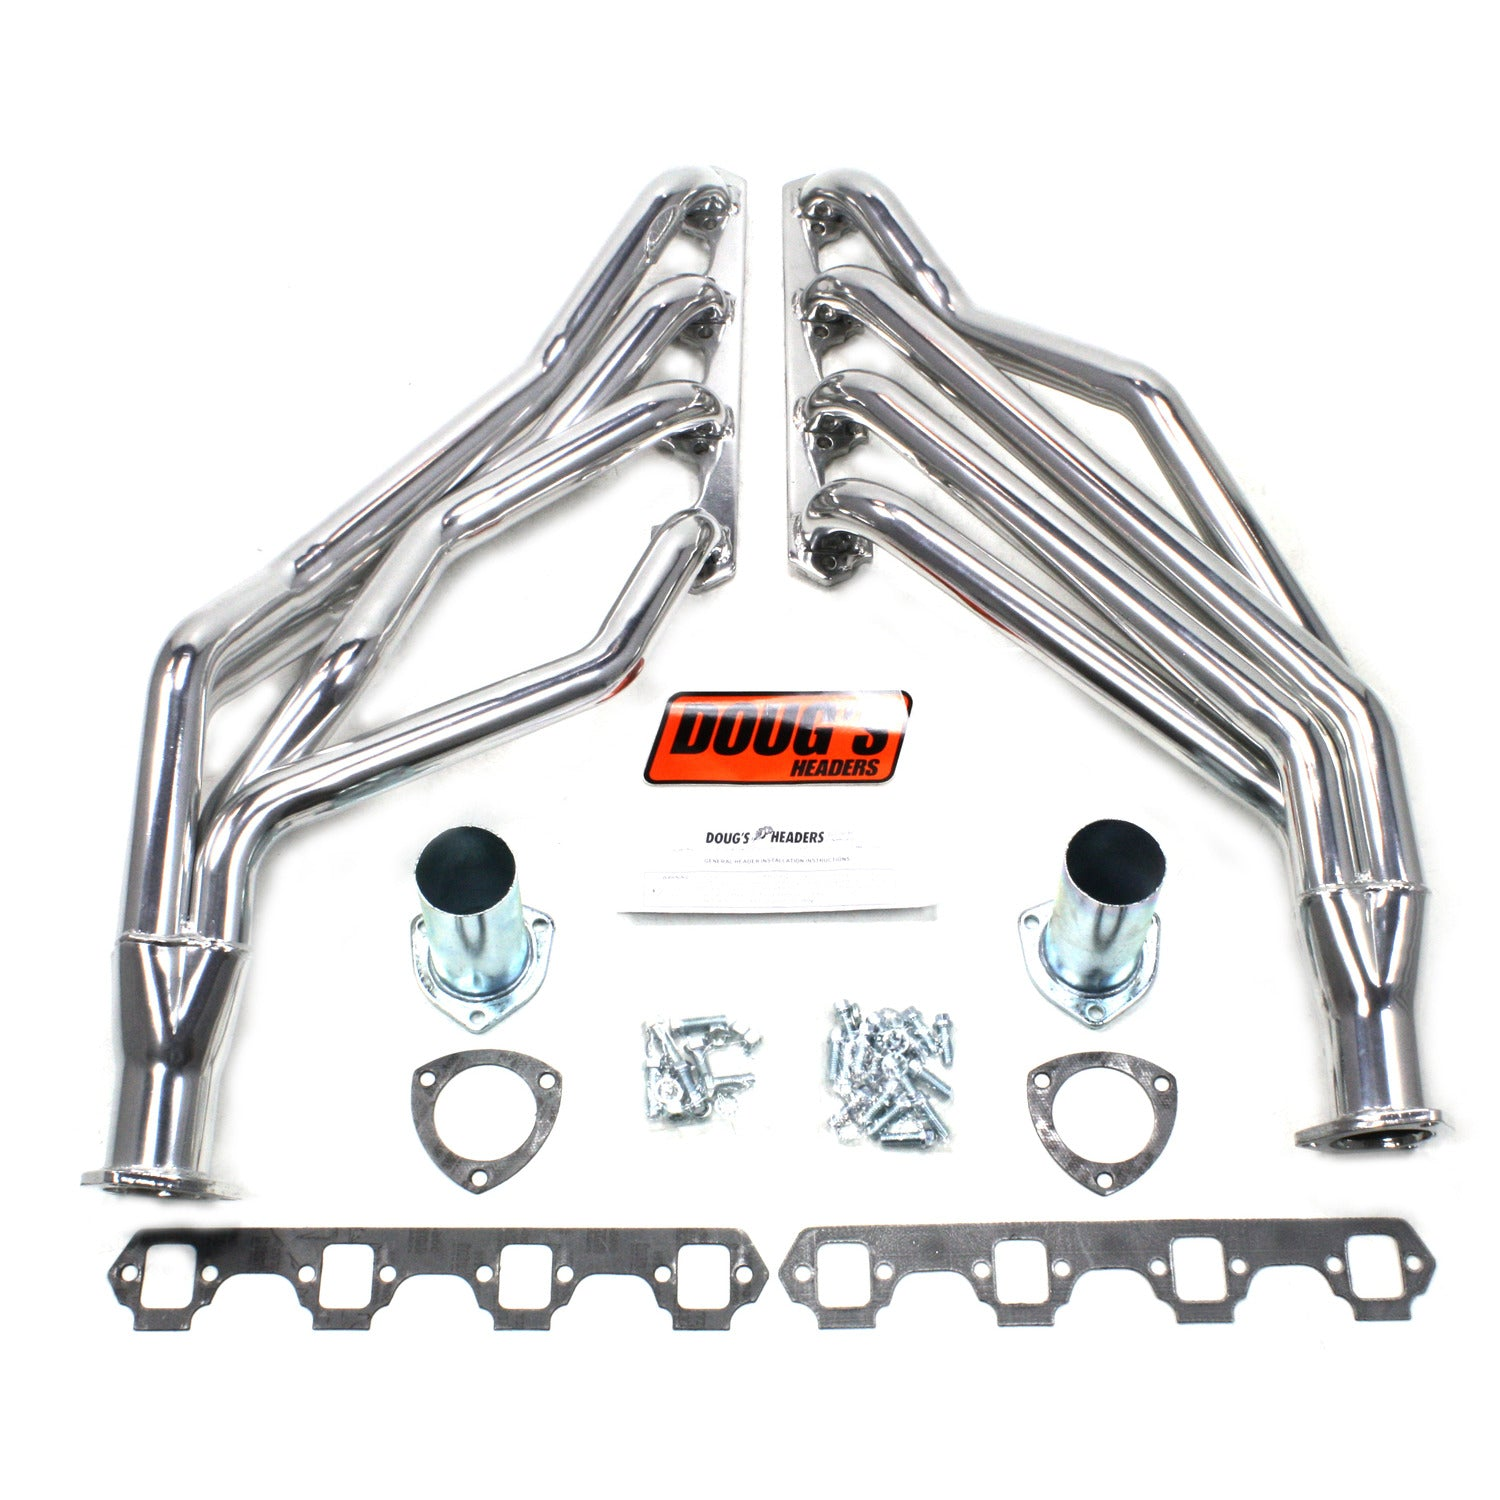 "Doug's Headers D668 1 5/8"" 4-Tube Full Length Header Ford Mustang Small Block Ford 64-73 Metallic Ceramic Coating"